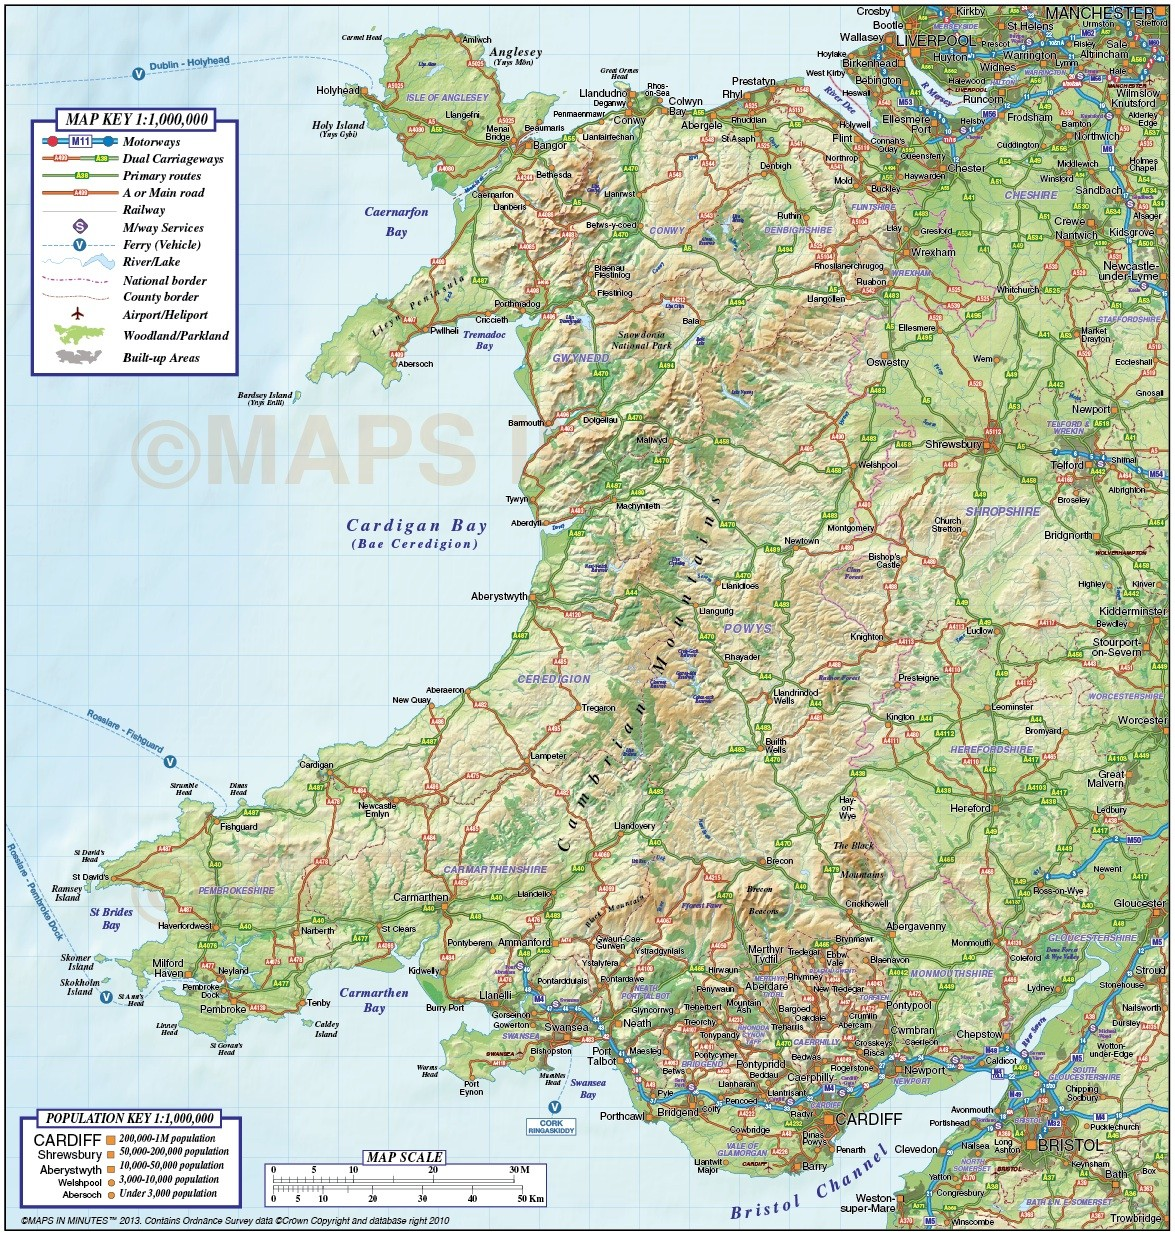 Printable Map Of Wales Pictures to Pin on Pinterest PinsDaddy